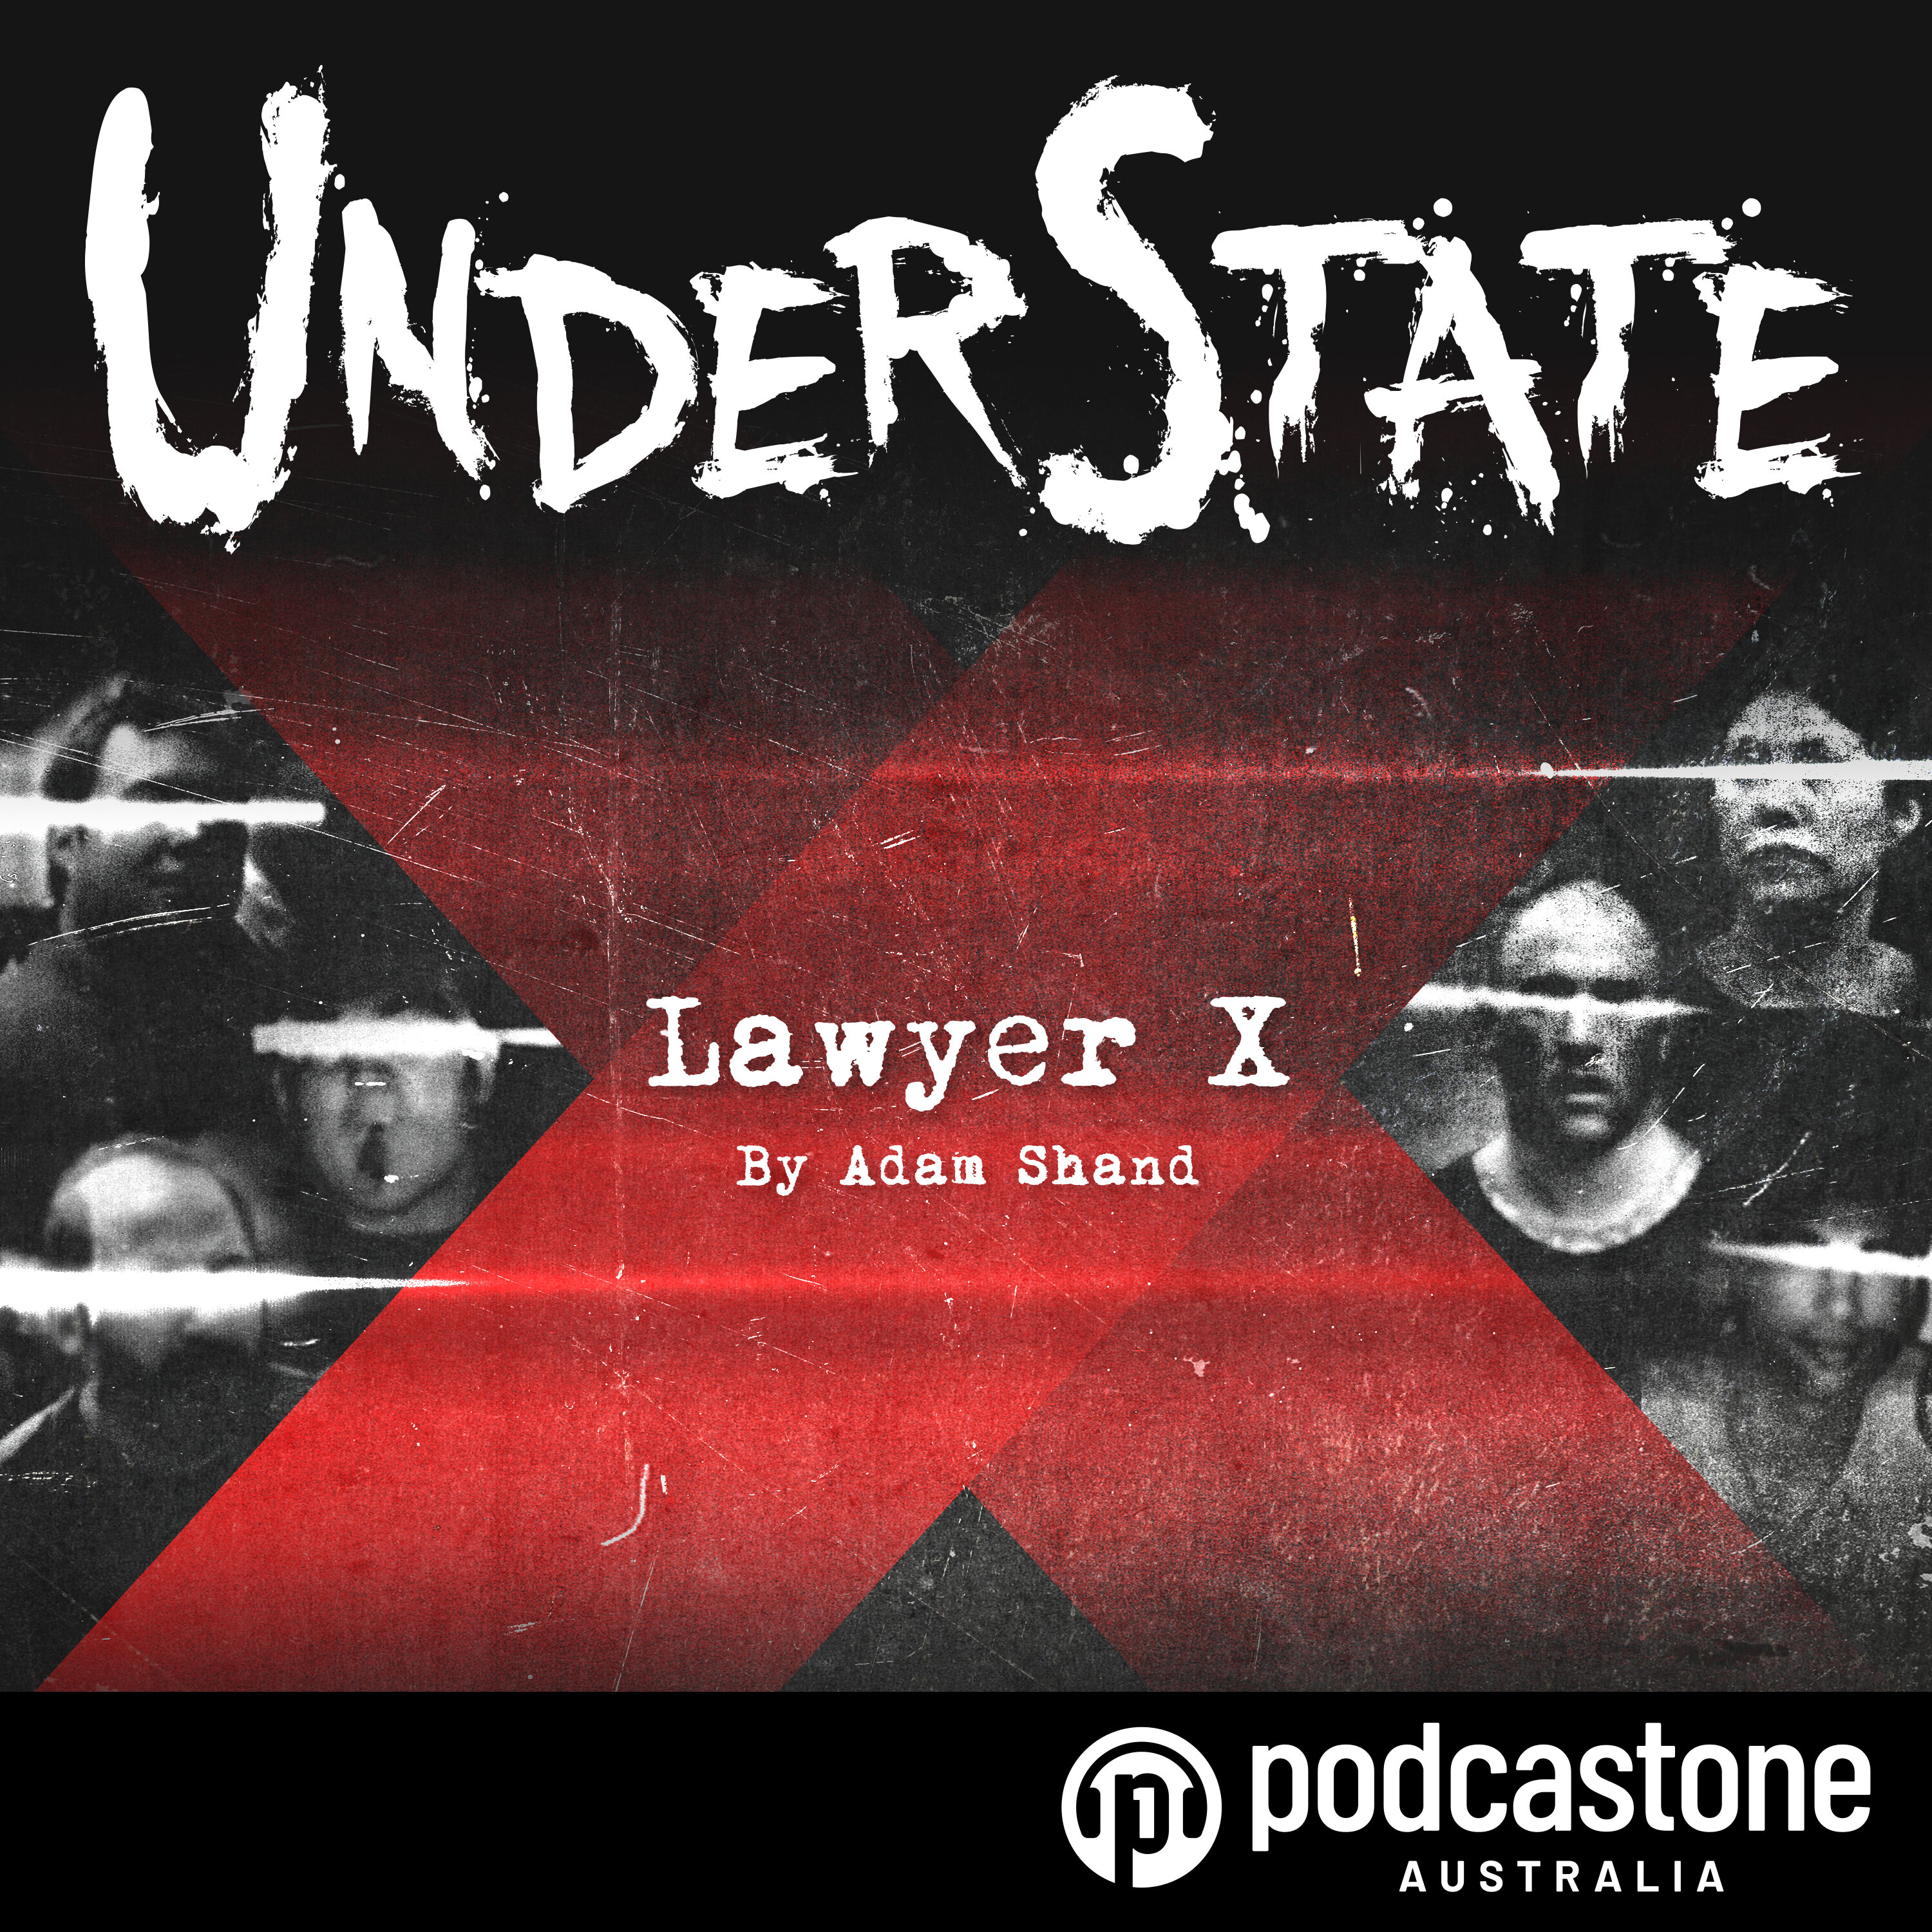 Under State: Lawyer X